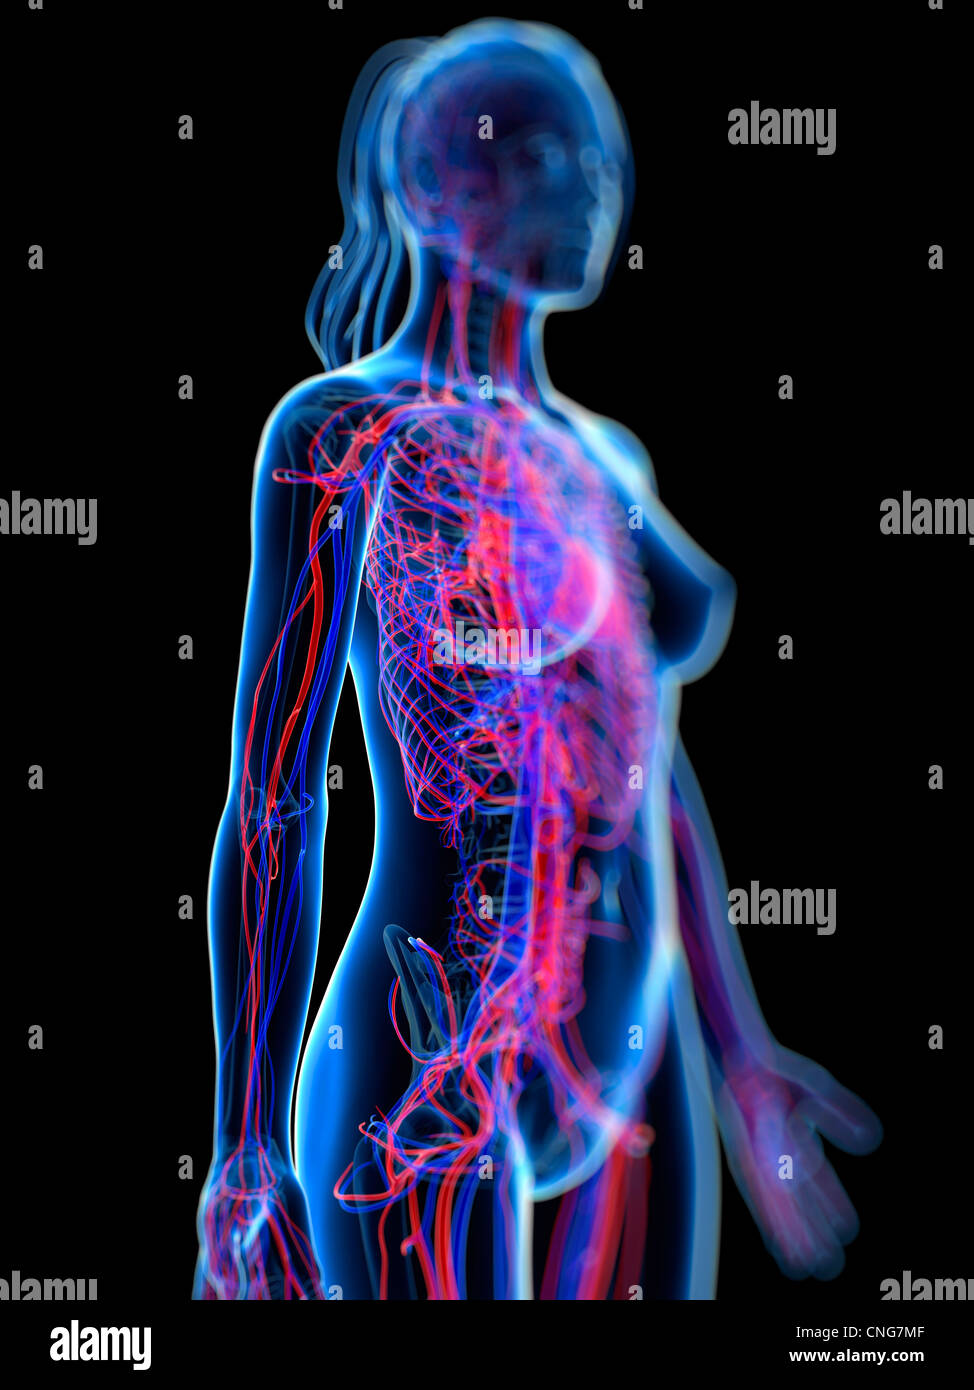 Cardiovascular System Artwork Stock Photo 47685807 Alamy